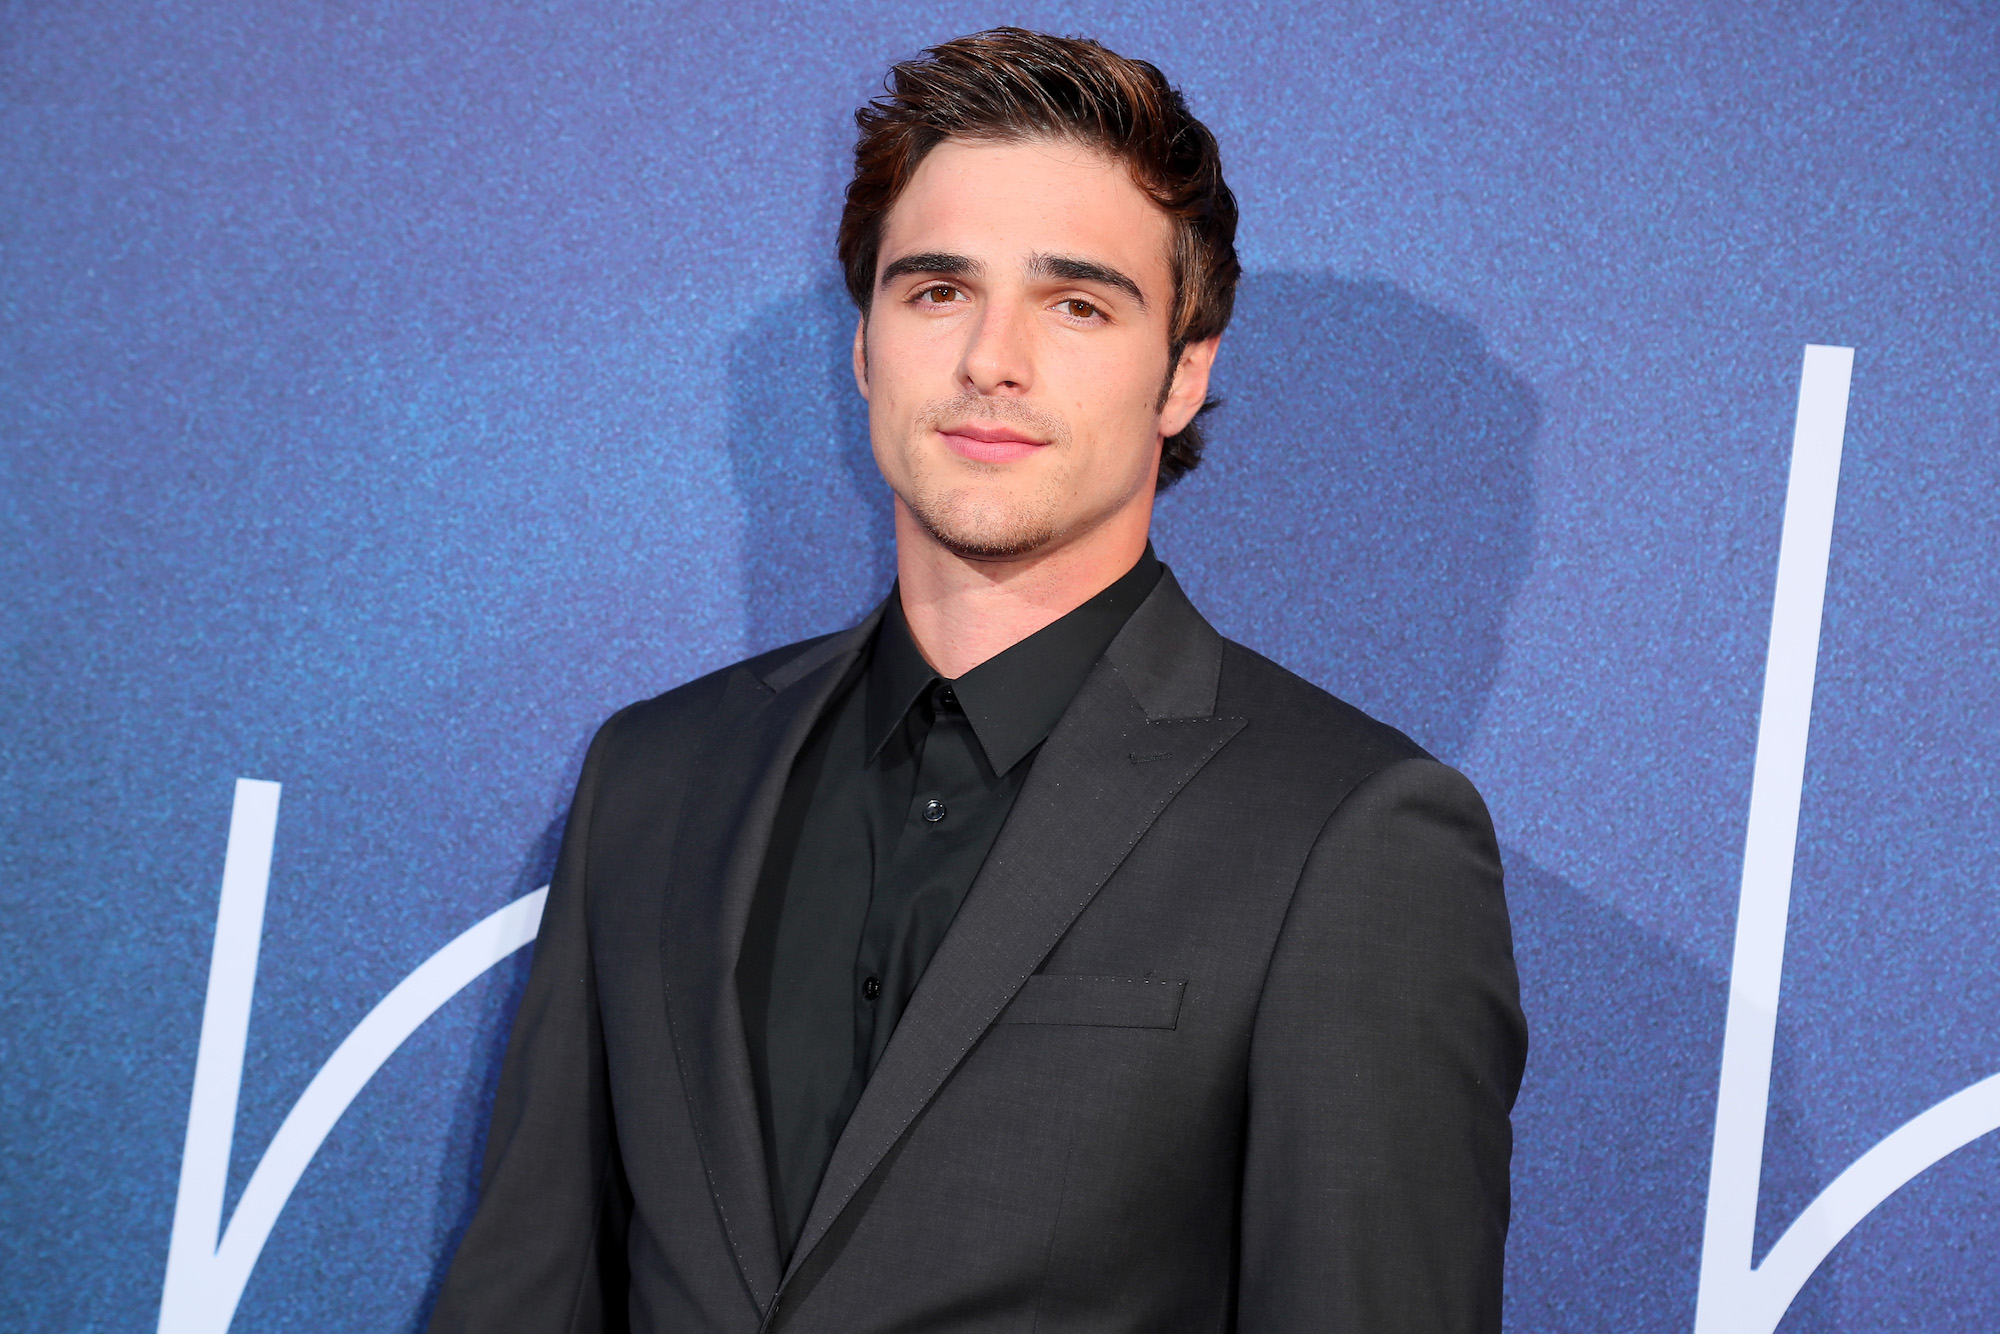 Jacob Elordi at the LA Premiere of HBO's 'Euphoria' on June 04, 2019